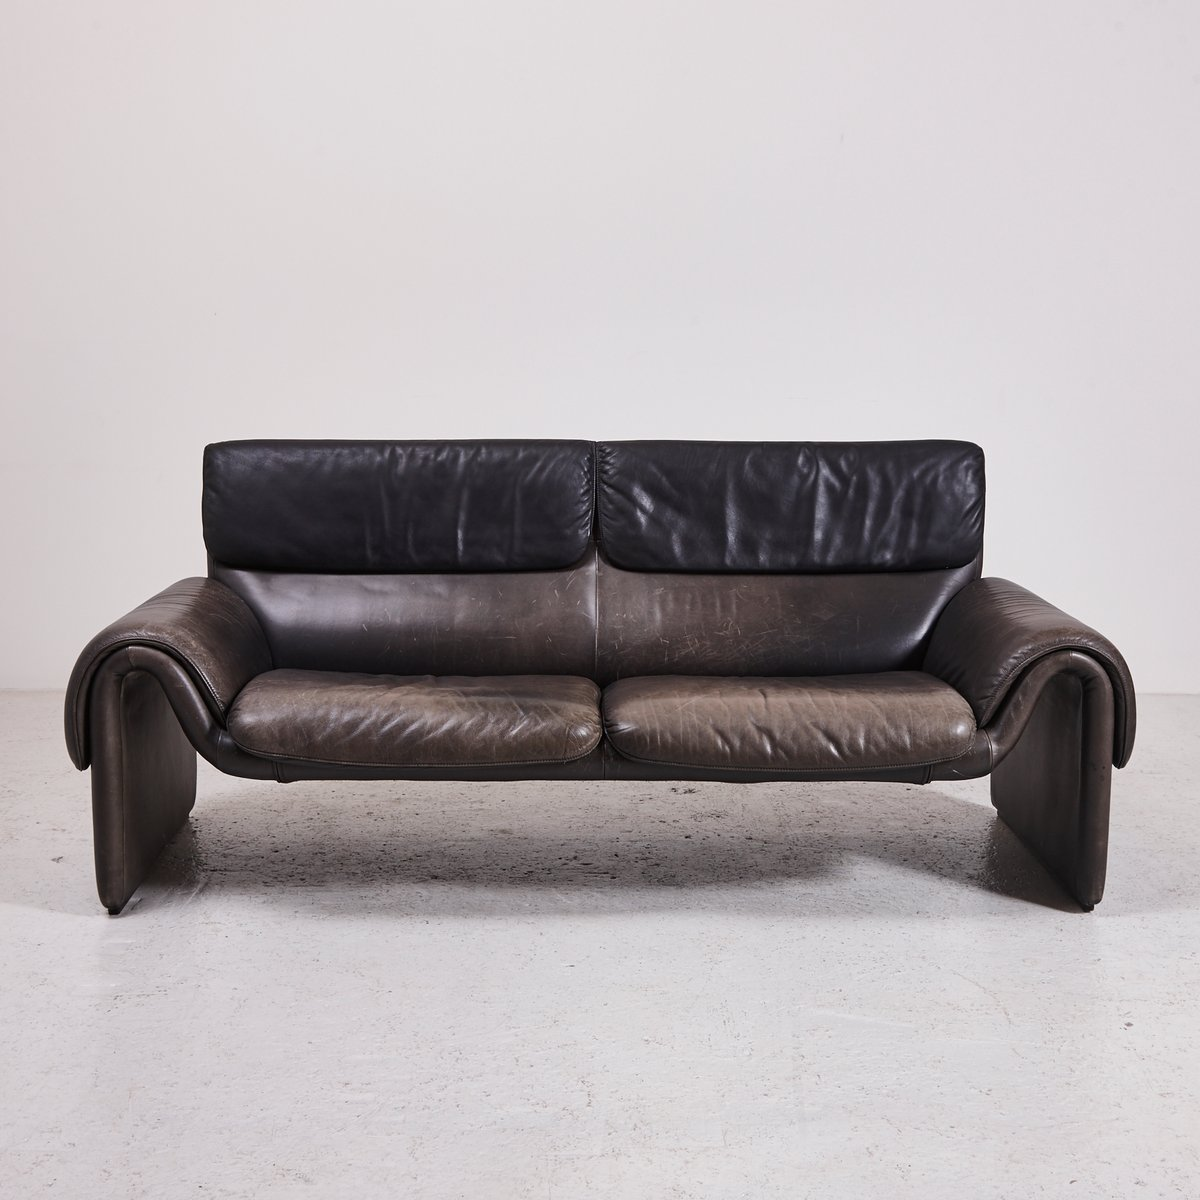 ds2011 sofa von de sede 1990er bei pamono kaufen. Black Bedroom Furniture Sets. Home Design Ideas